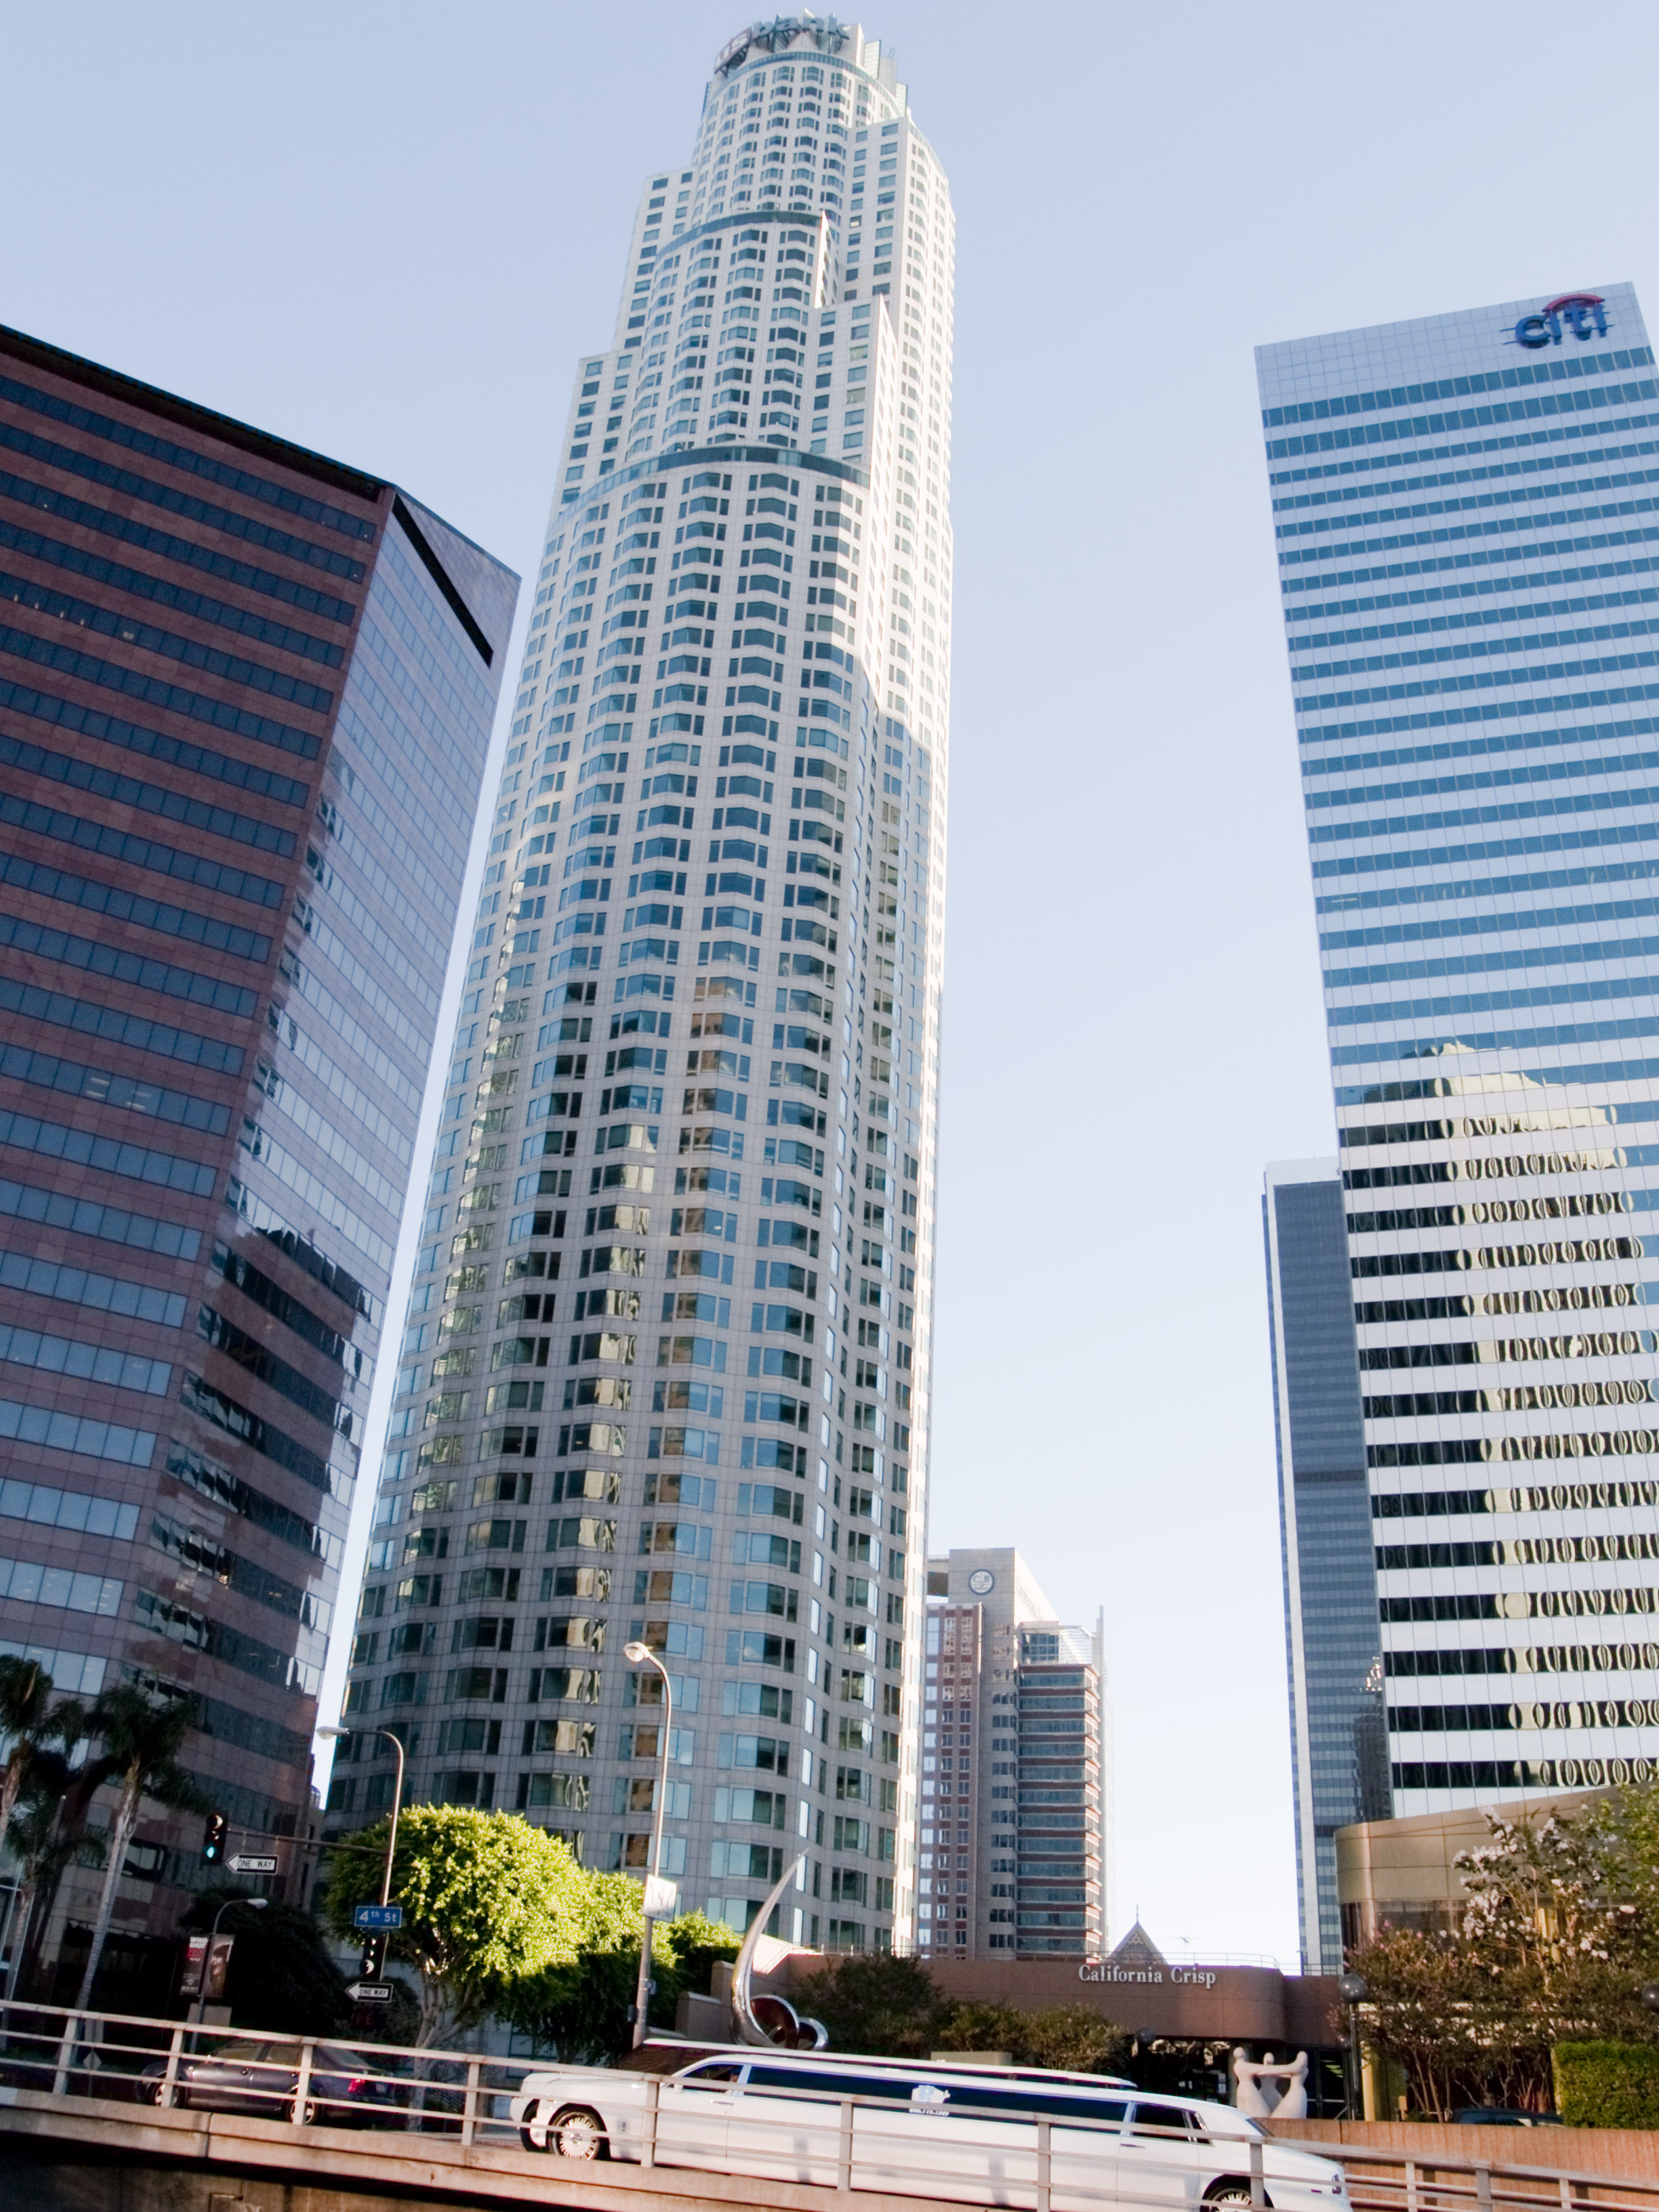 Singapore firm to buy iconic LA tower